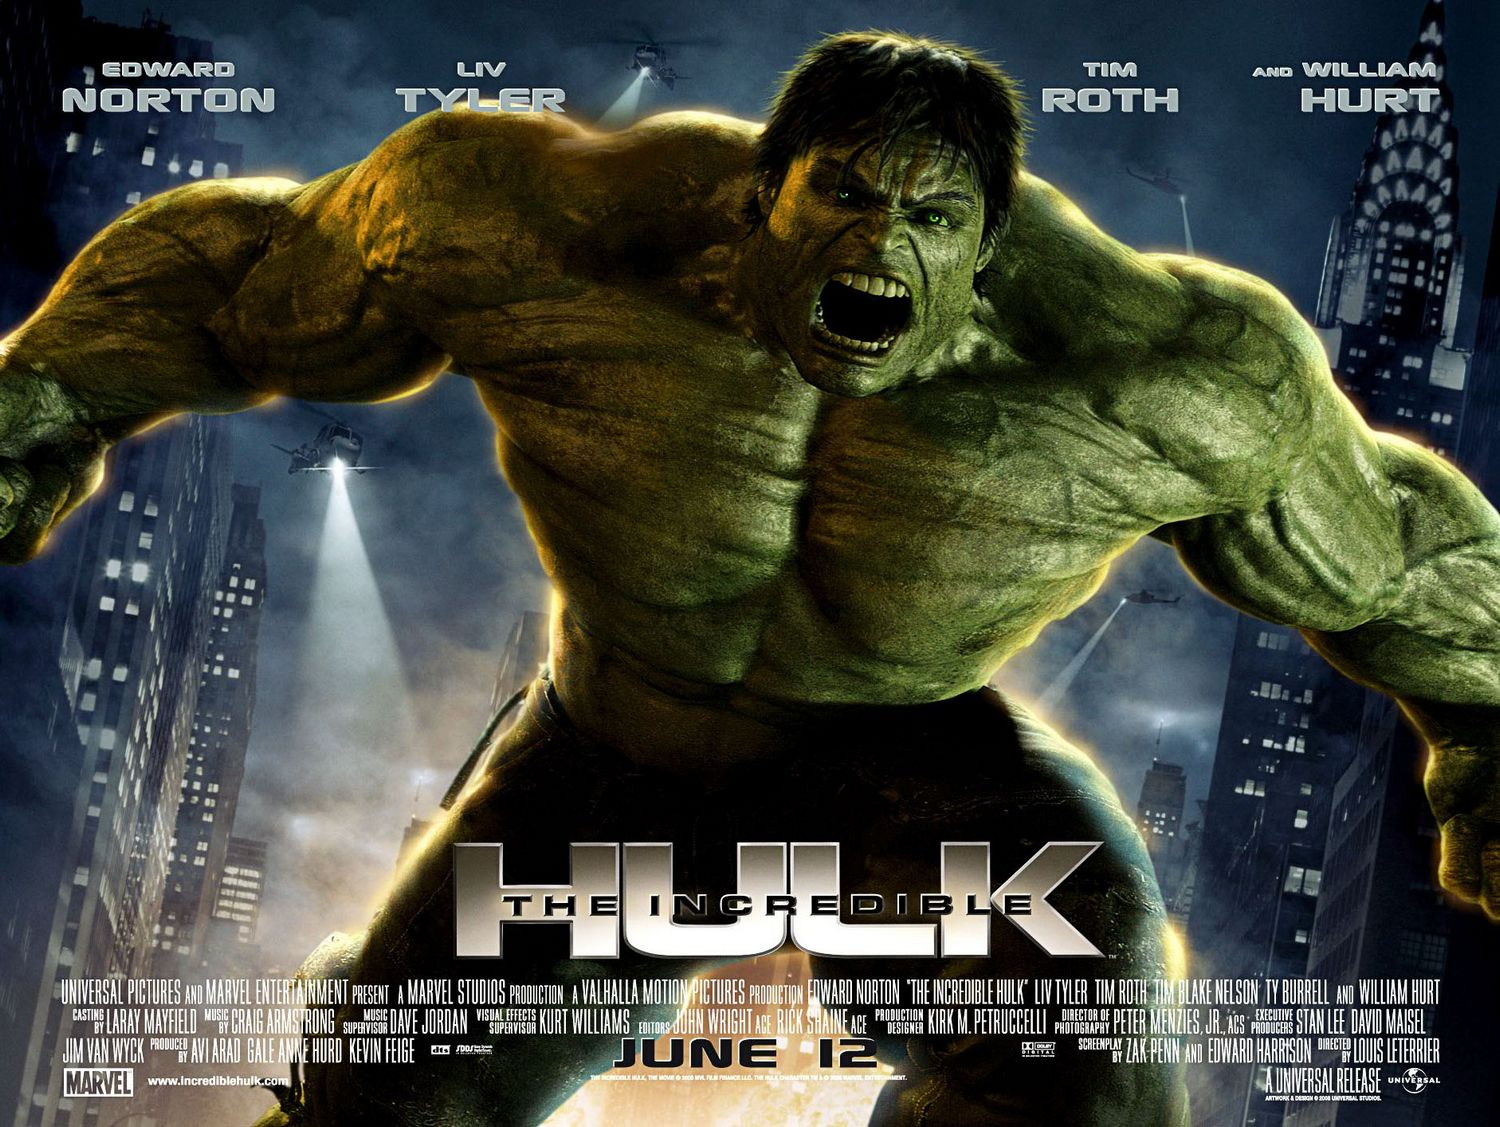 Road to The Avengers: The Incredible Hulk